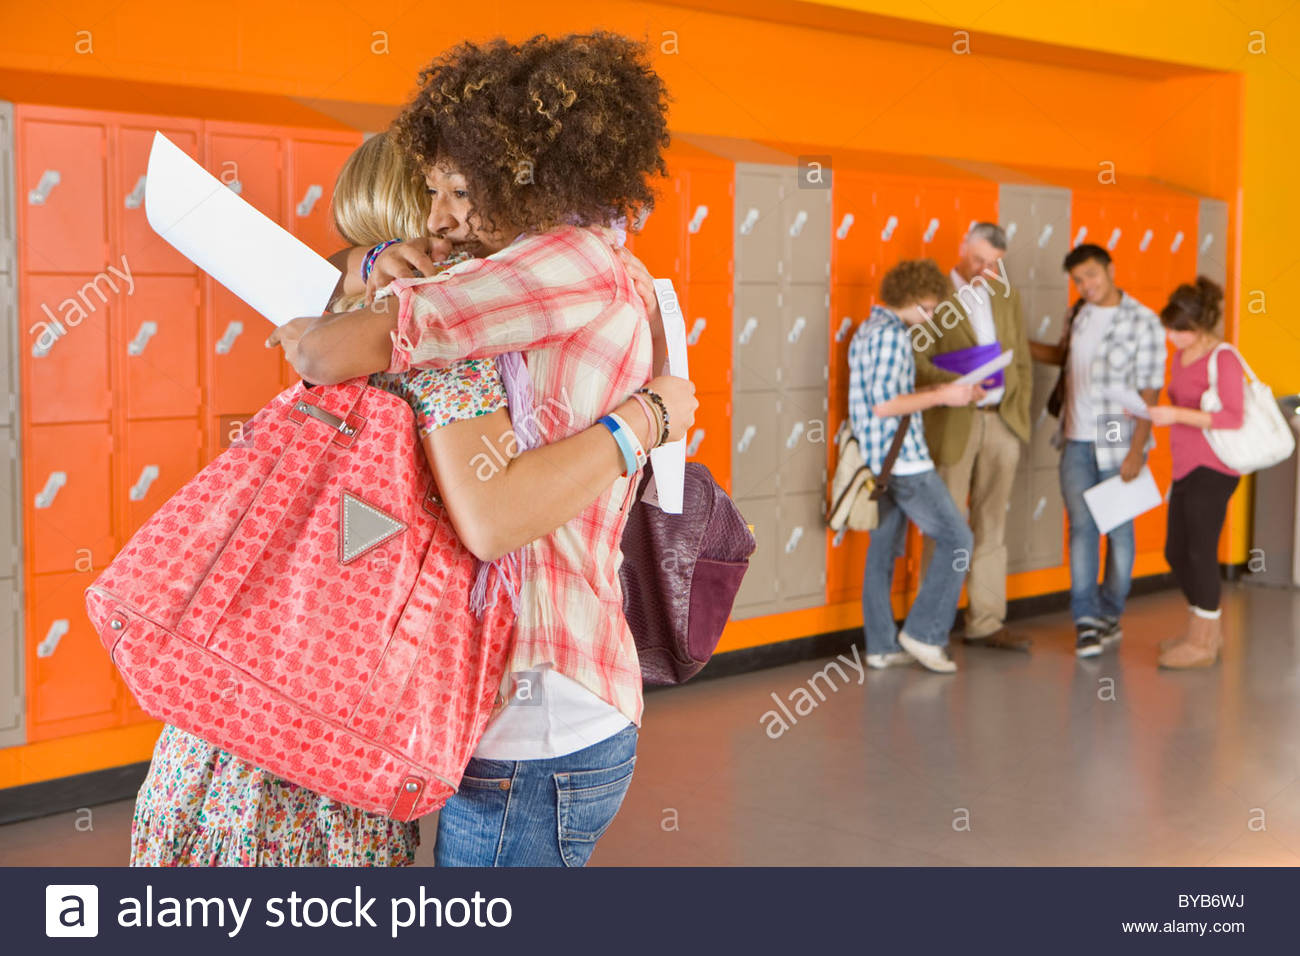 Excited students hugging after receiving good news about test results - Stock Image